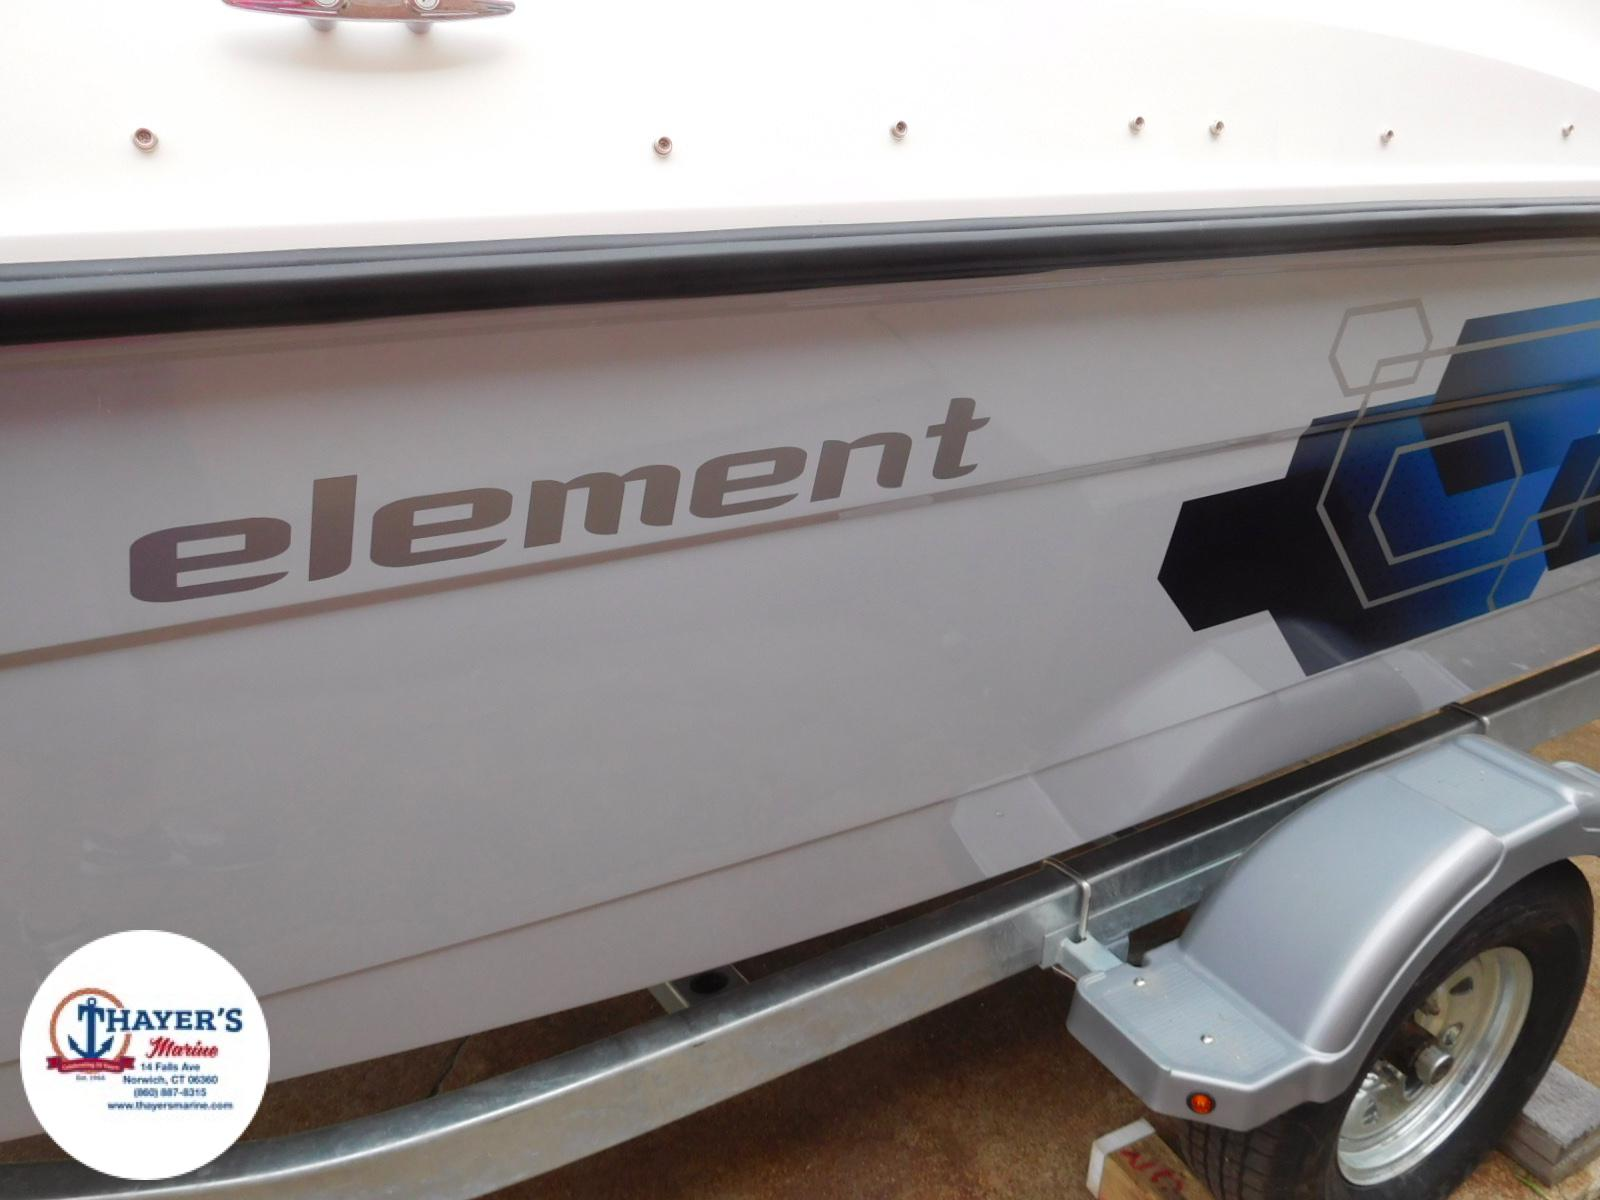 2018 Bayliner boat for sale, model of the boat is Element E18 & Image # 12 of 17